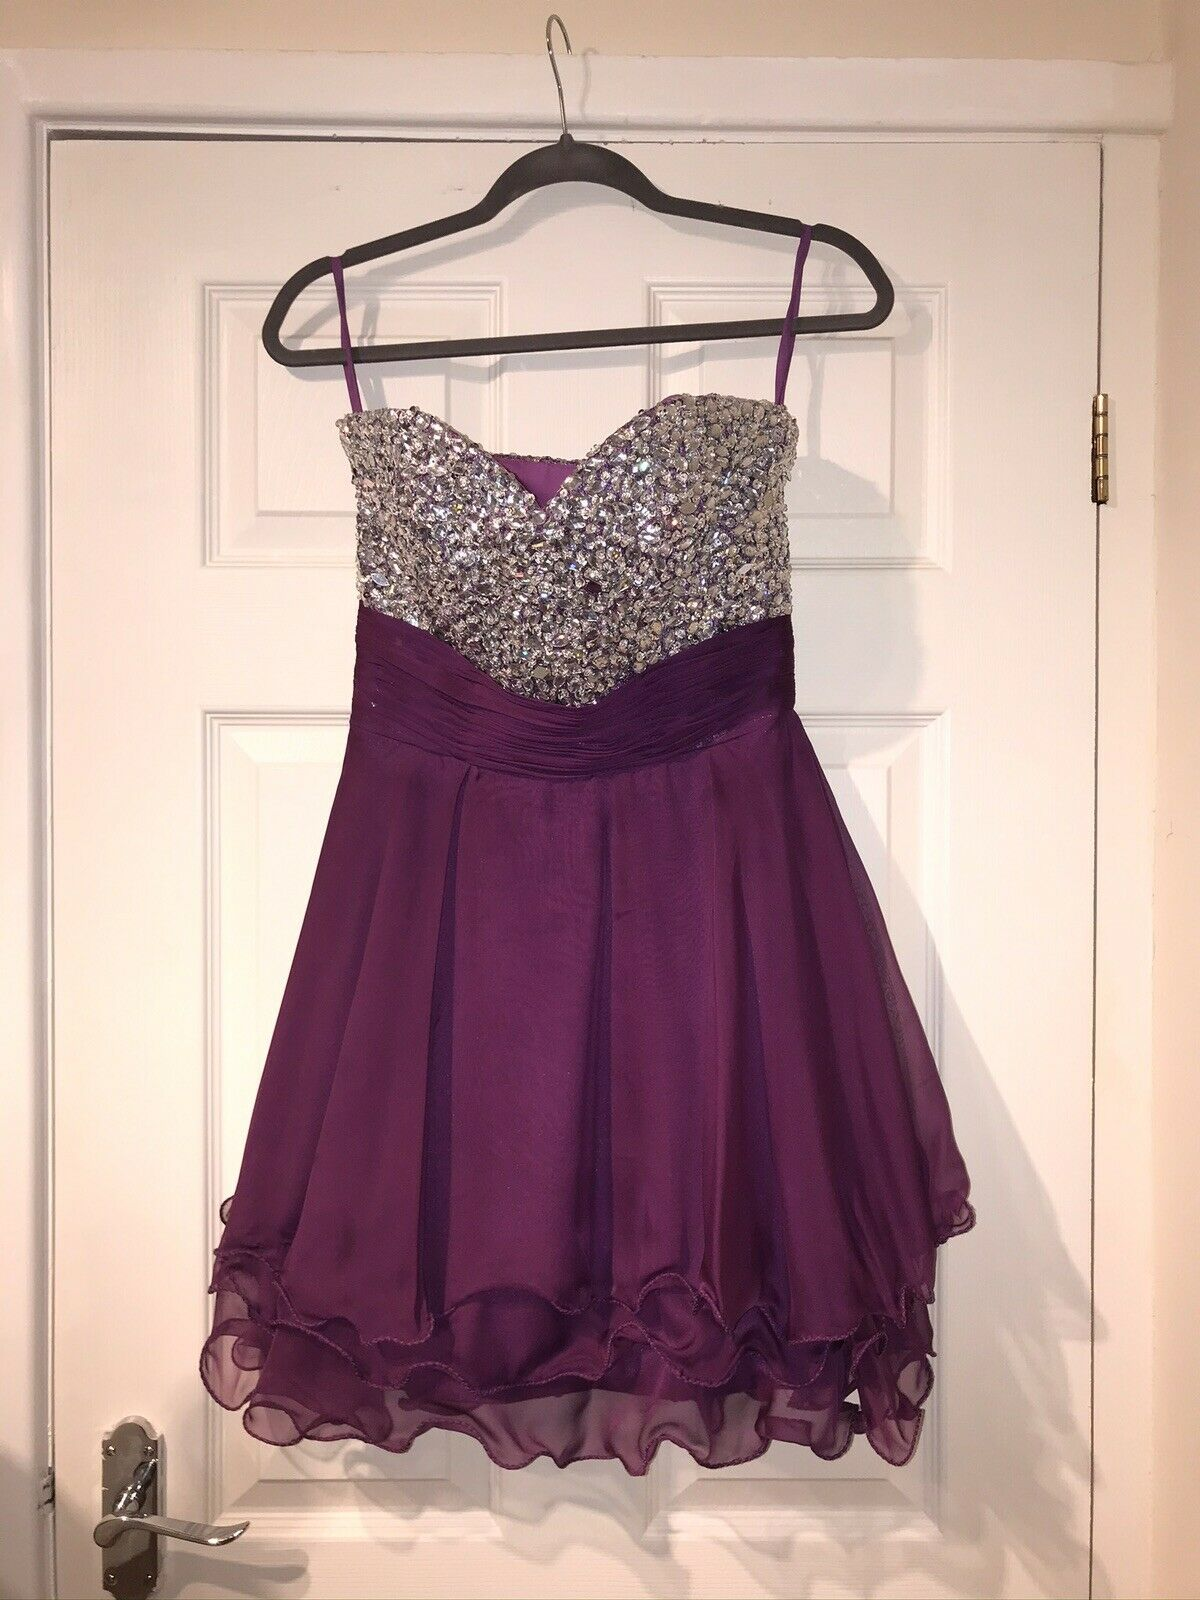 Sequinned Ball Prom Cocktail Dress UK8